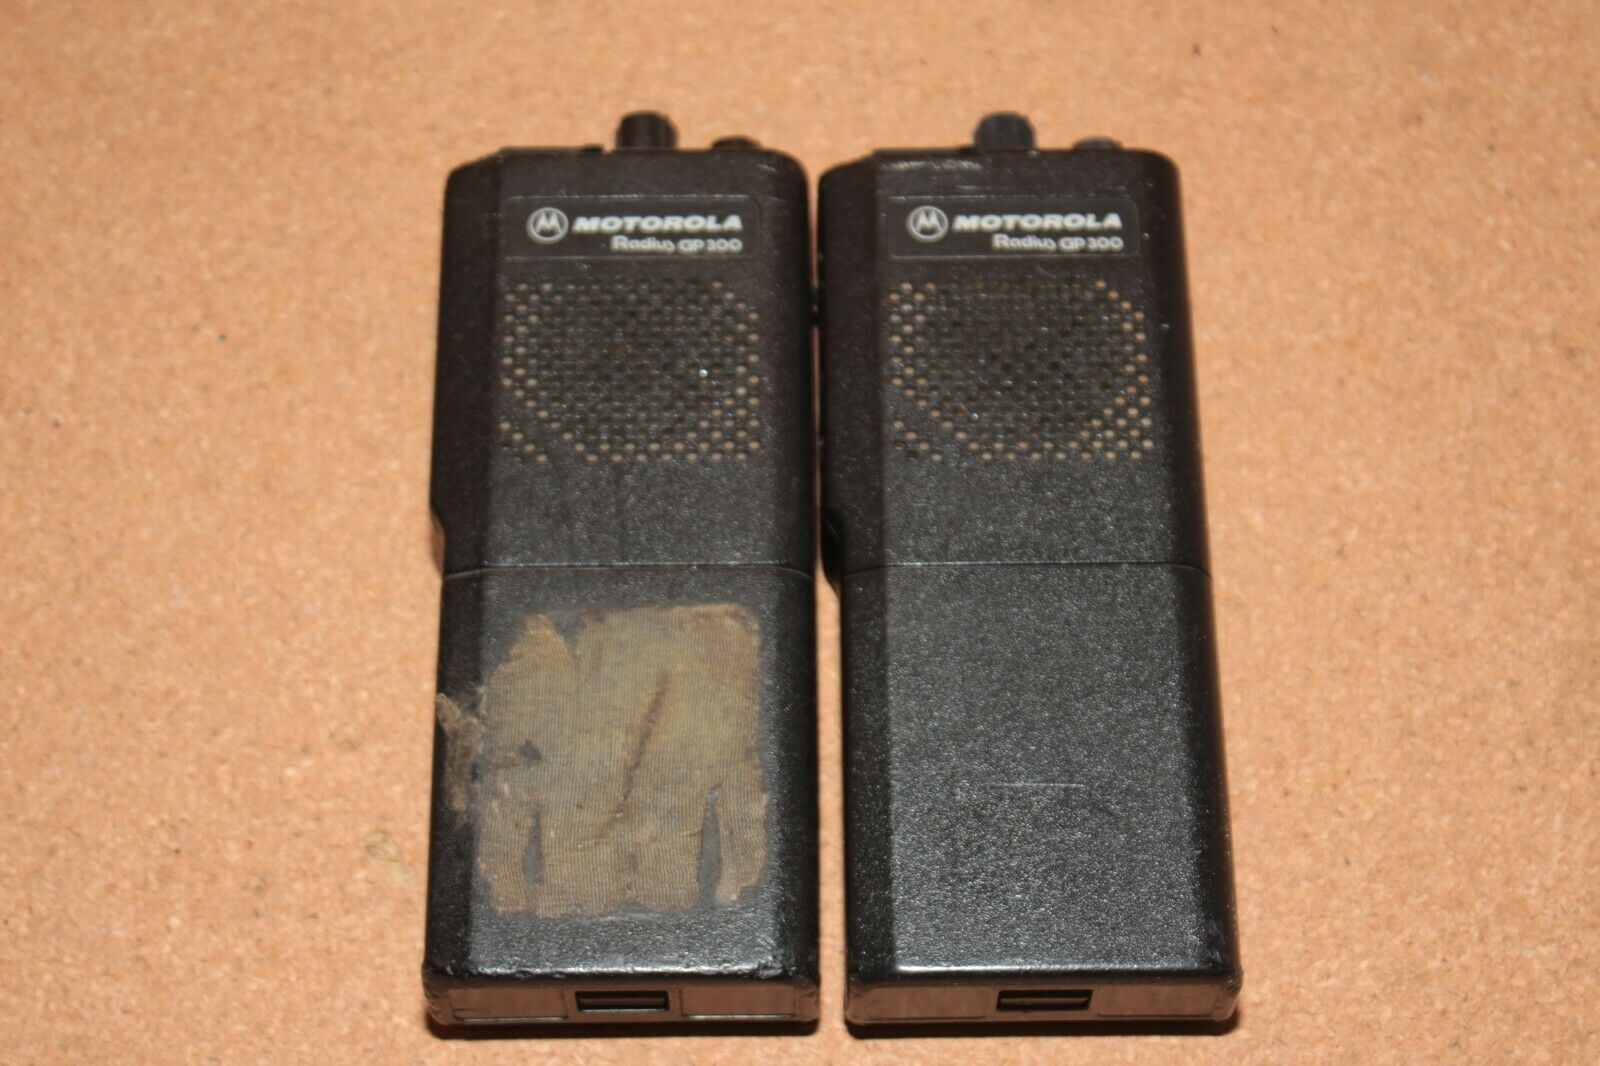 Motorola Radius Gp300 Portable P93YPC20A2AA Lot of 2 AS IS . Buy it now for 65.00